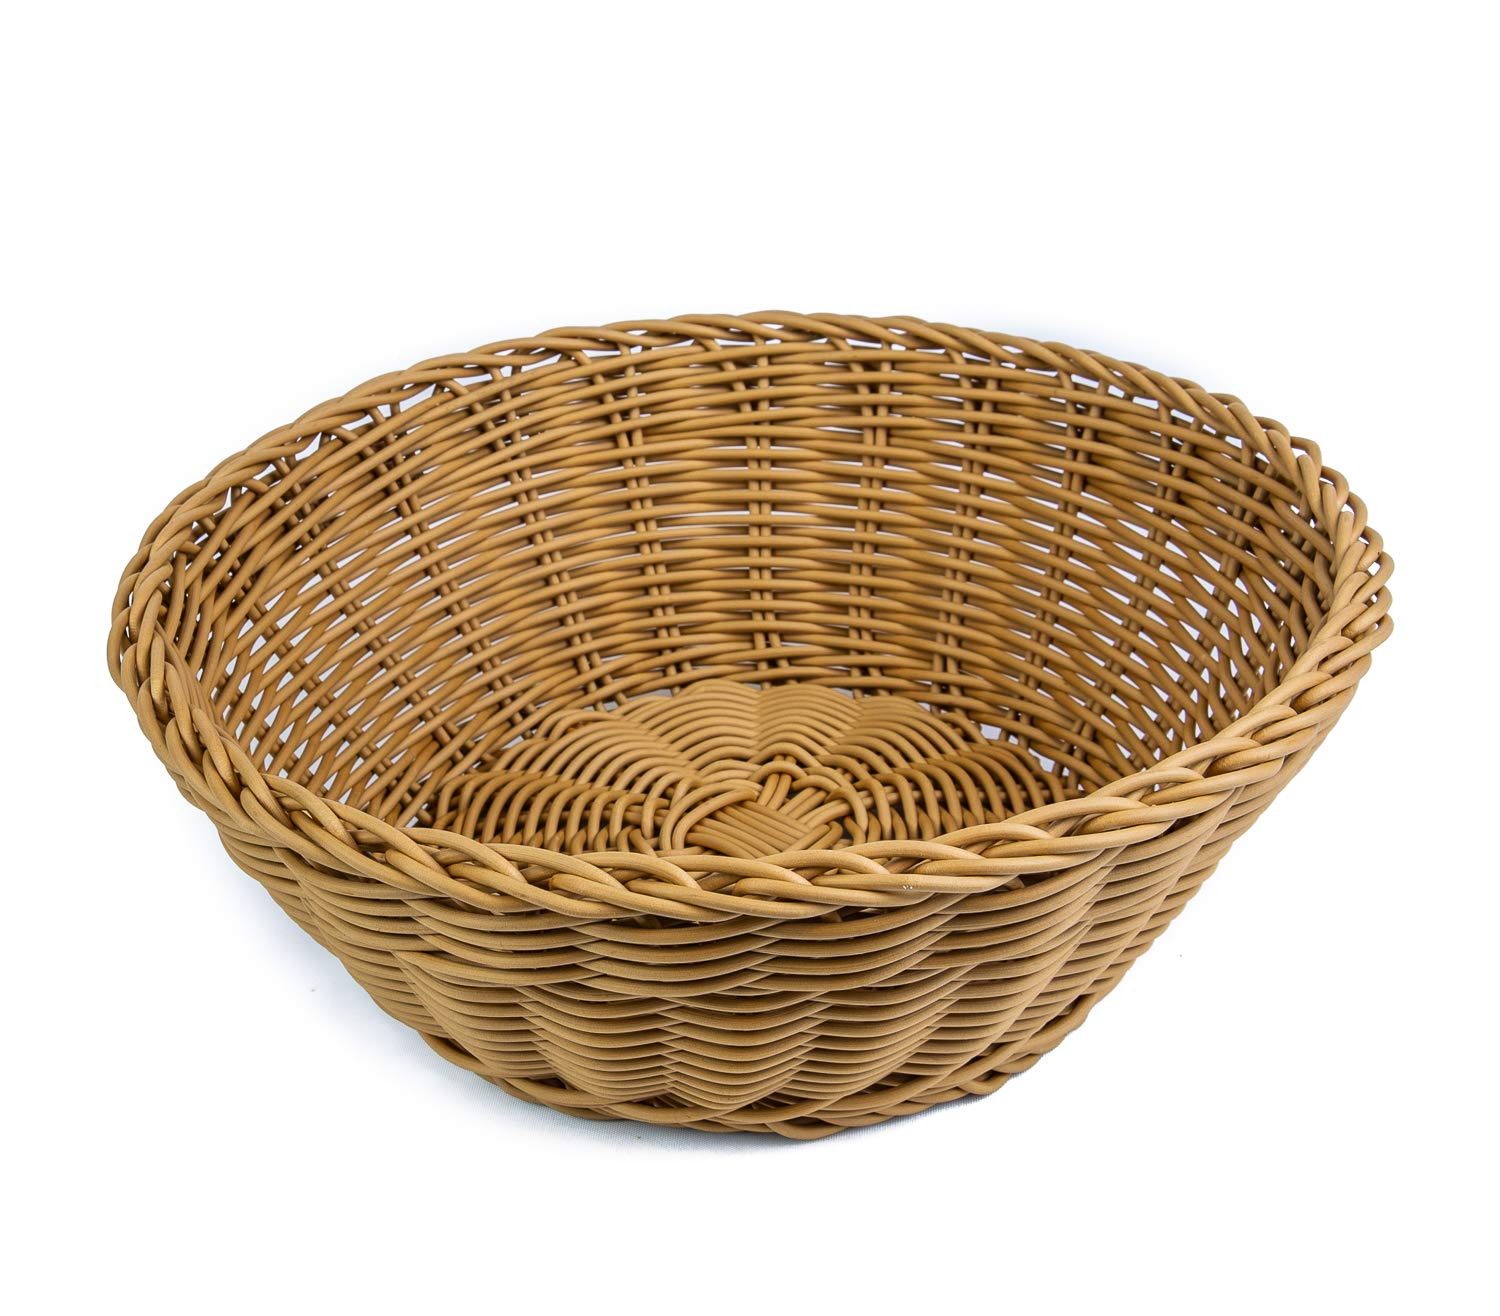 KOVOT Poly-Wicker Round Basket - 10.5